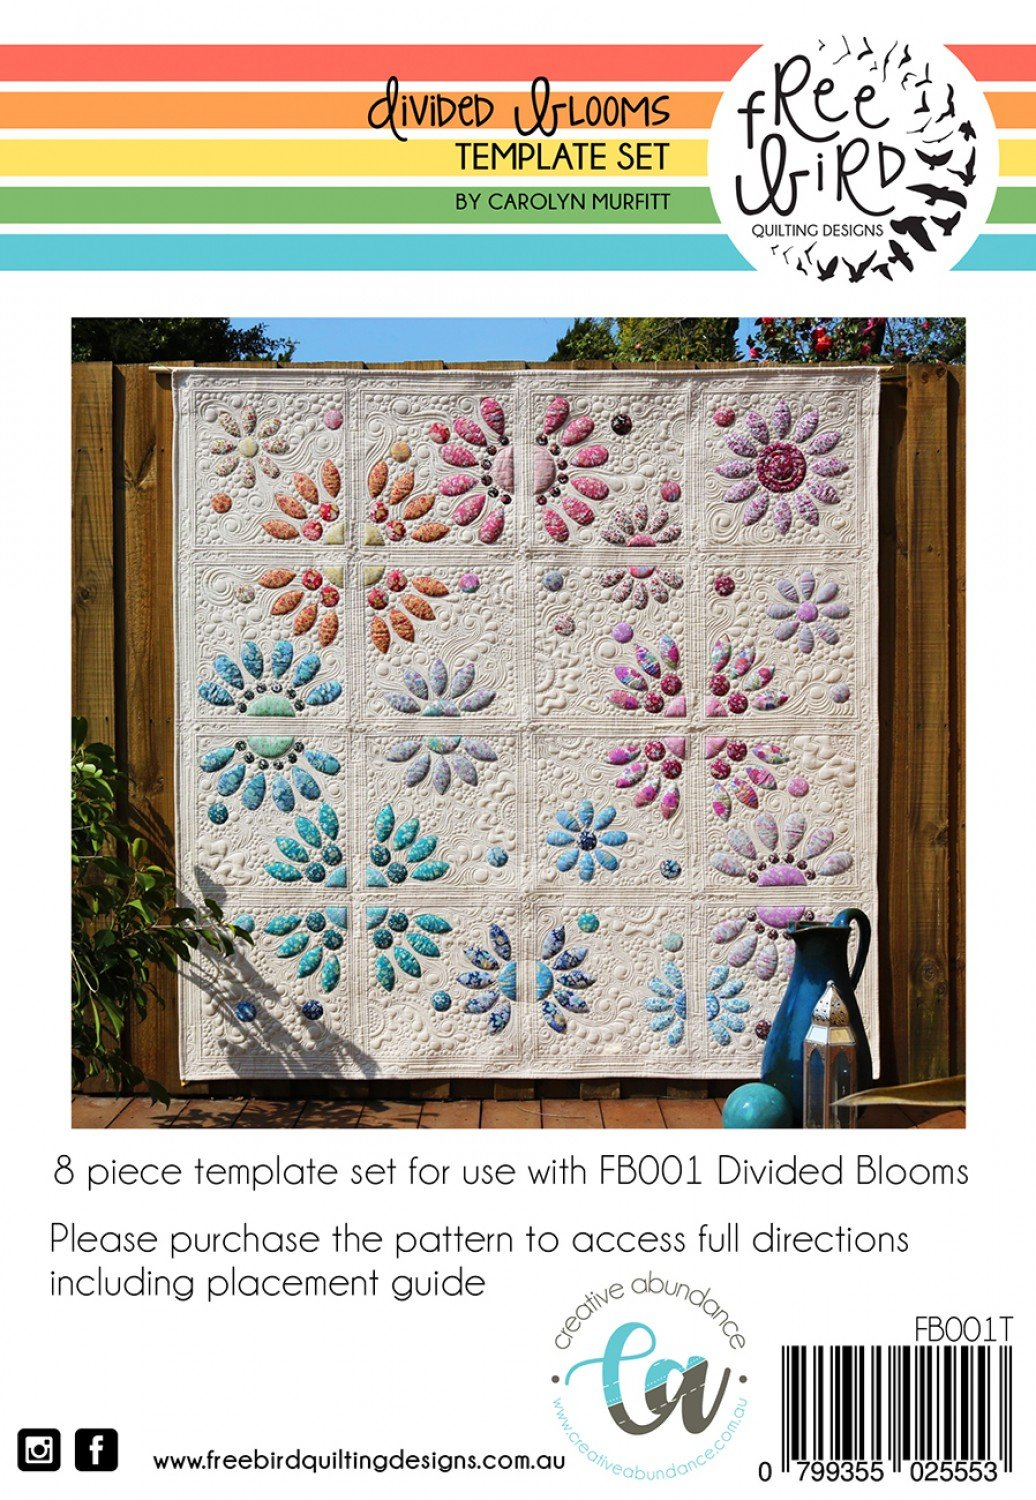 Divided Blooms -Template Set - Free Bird Quilting Designs